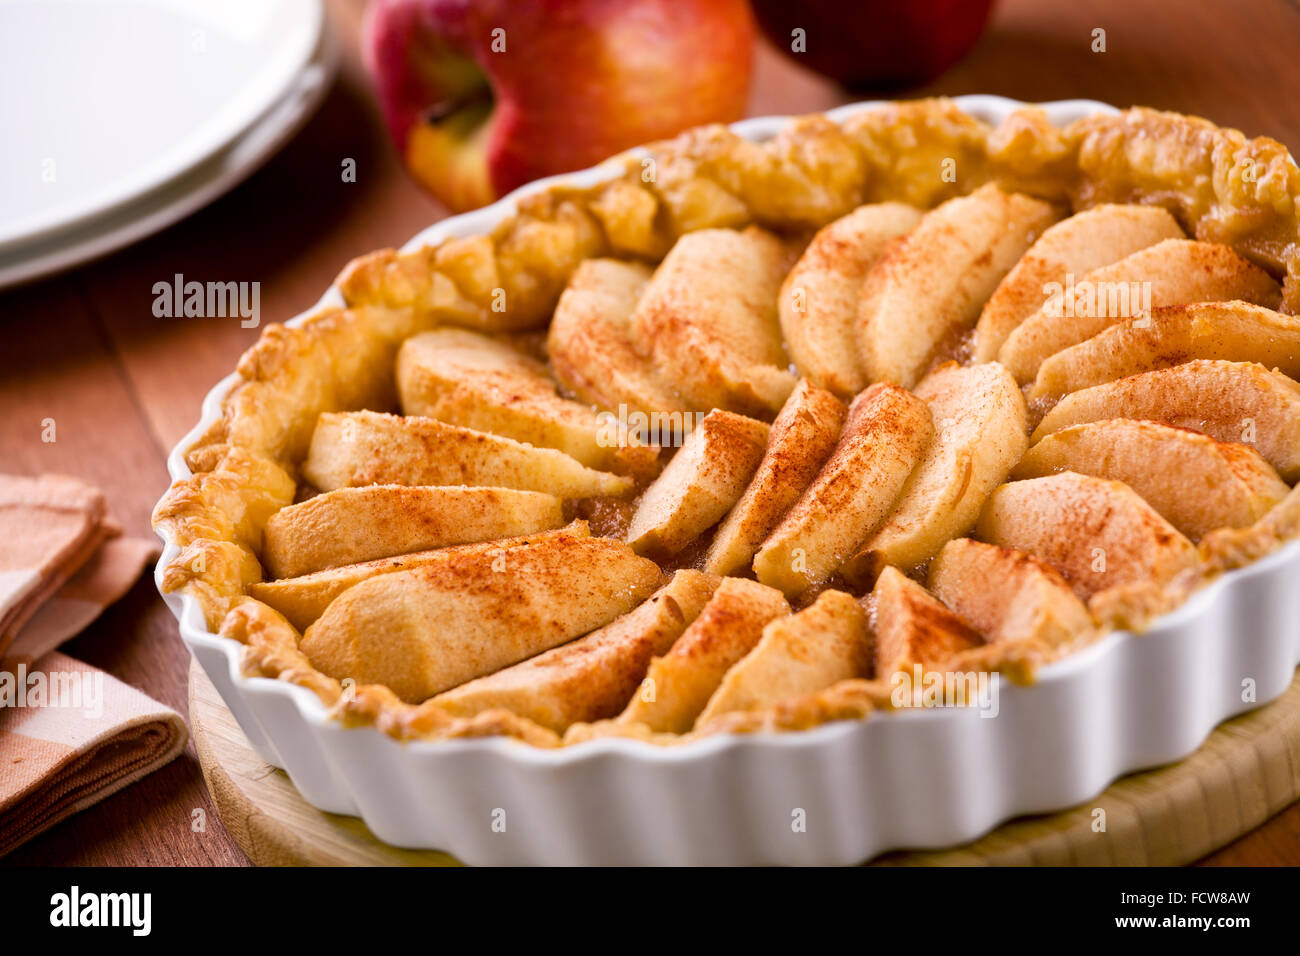 Close up of a tasty homemade apple pie - Stock Image